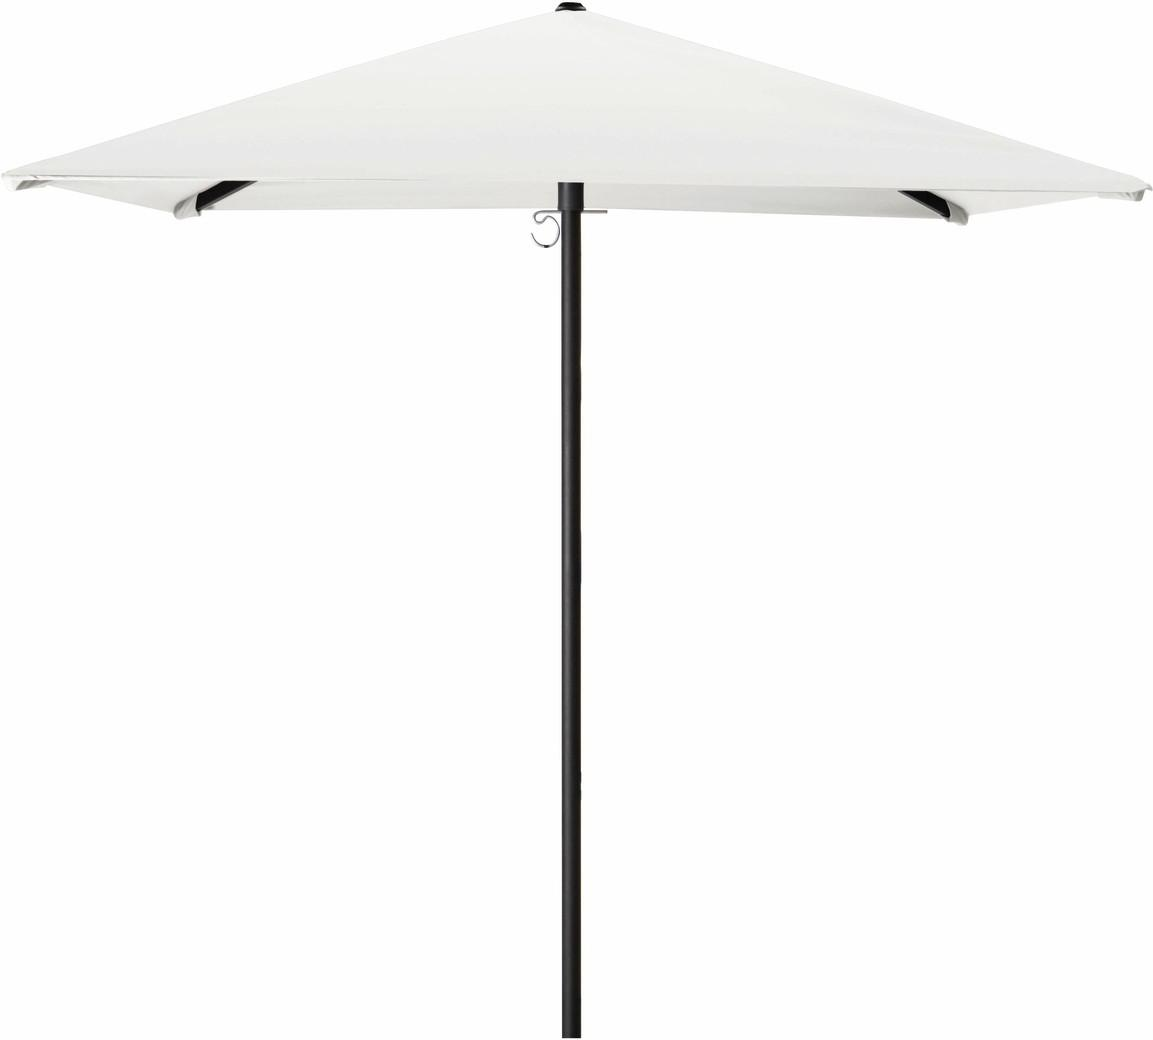 Umbrella small - central pole black - 180x180 canvas